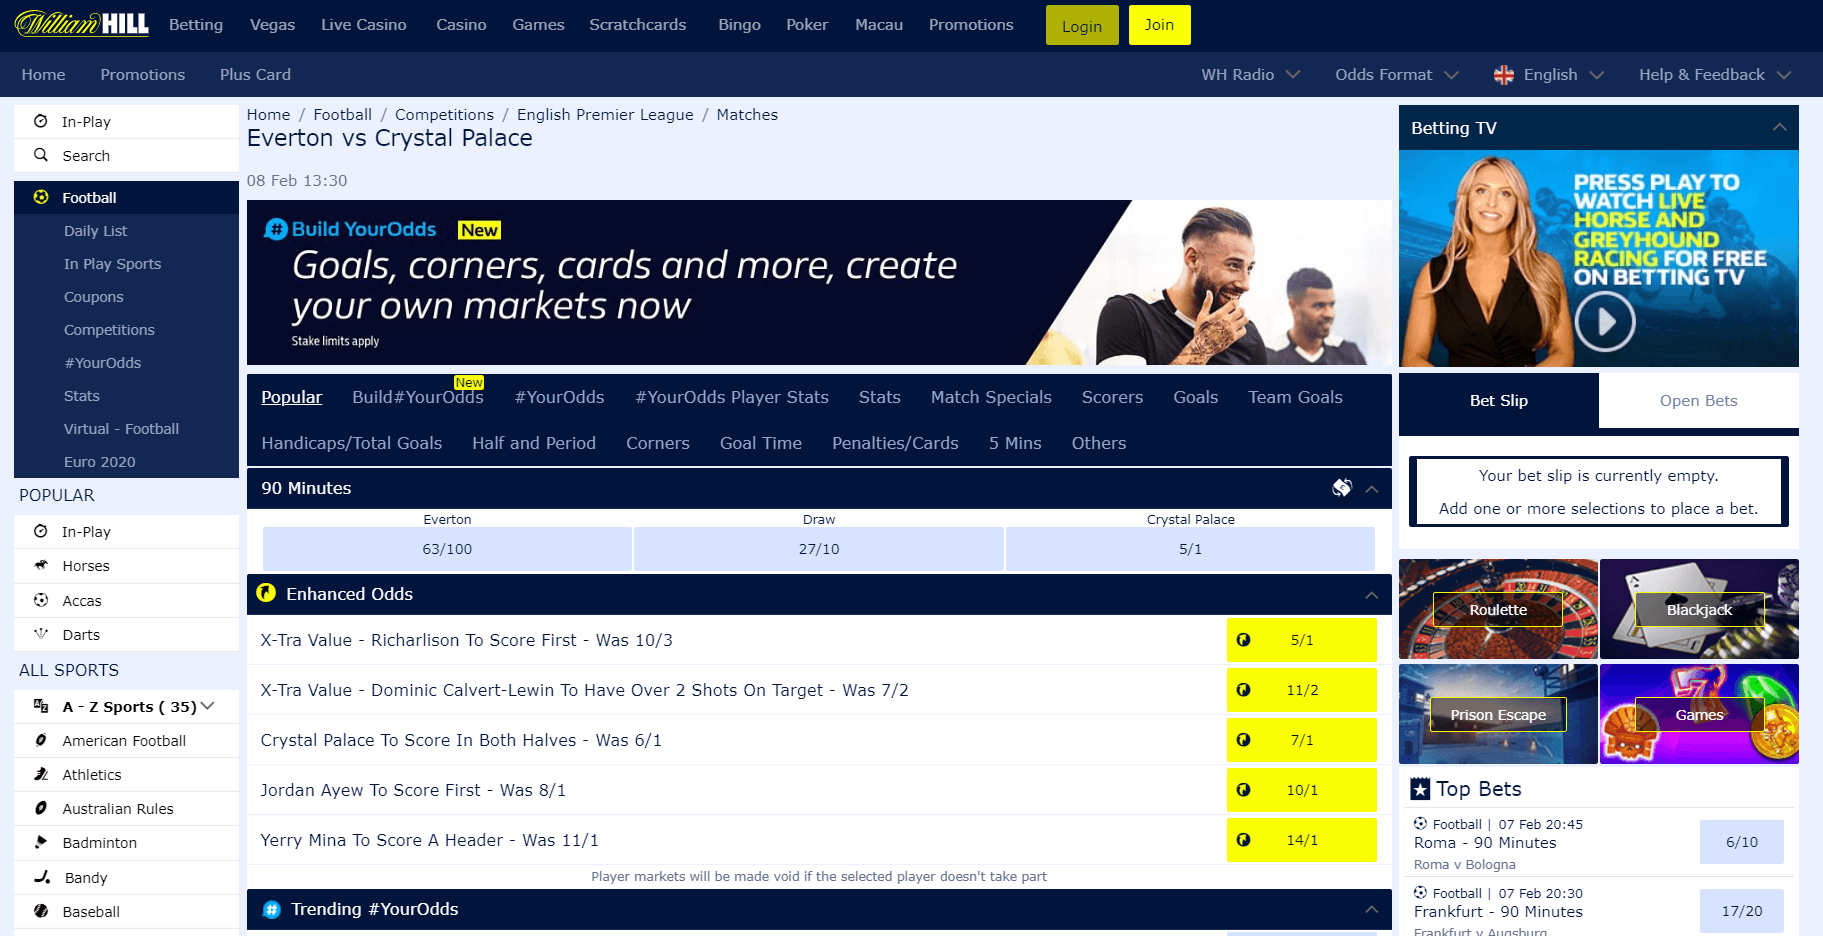 william hill sports offering